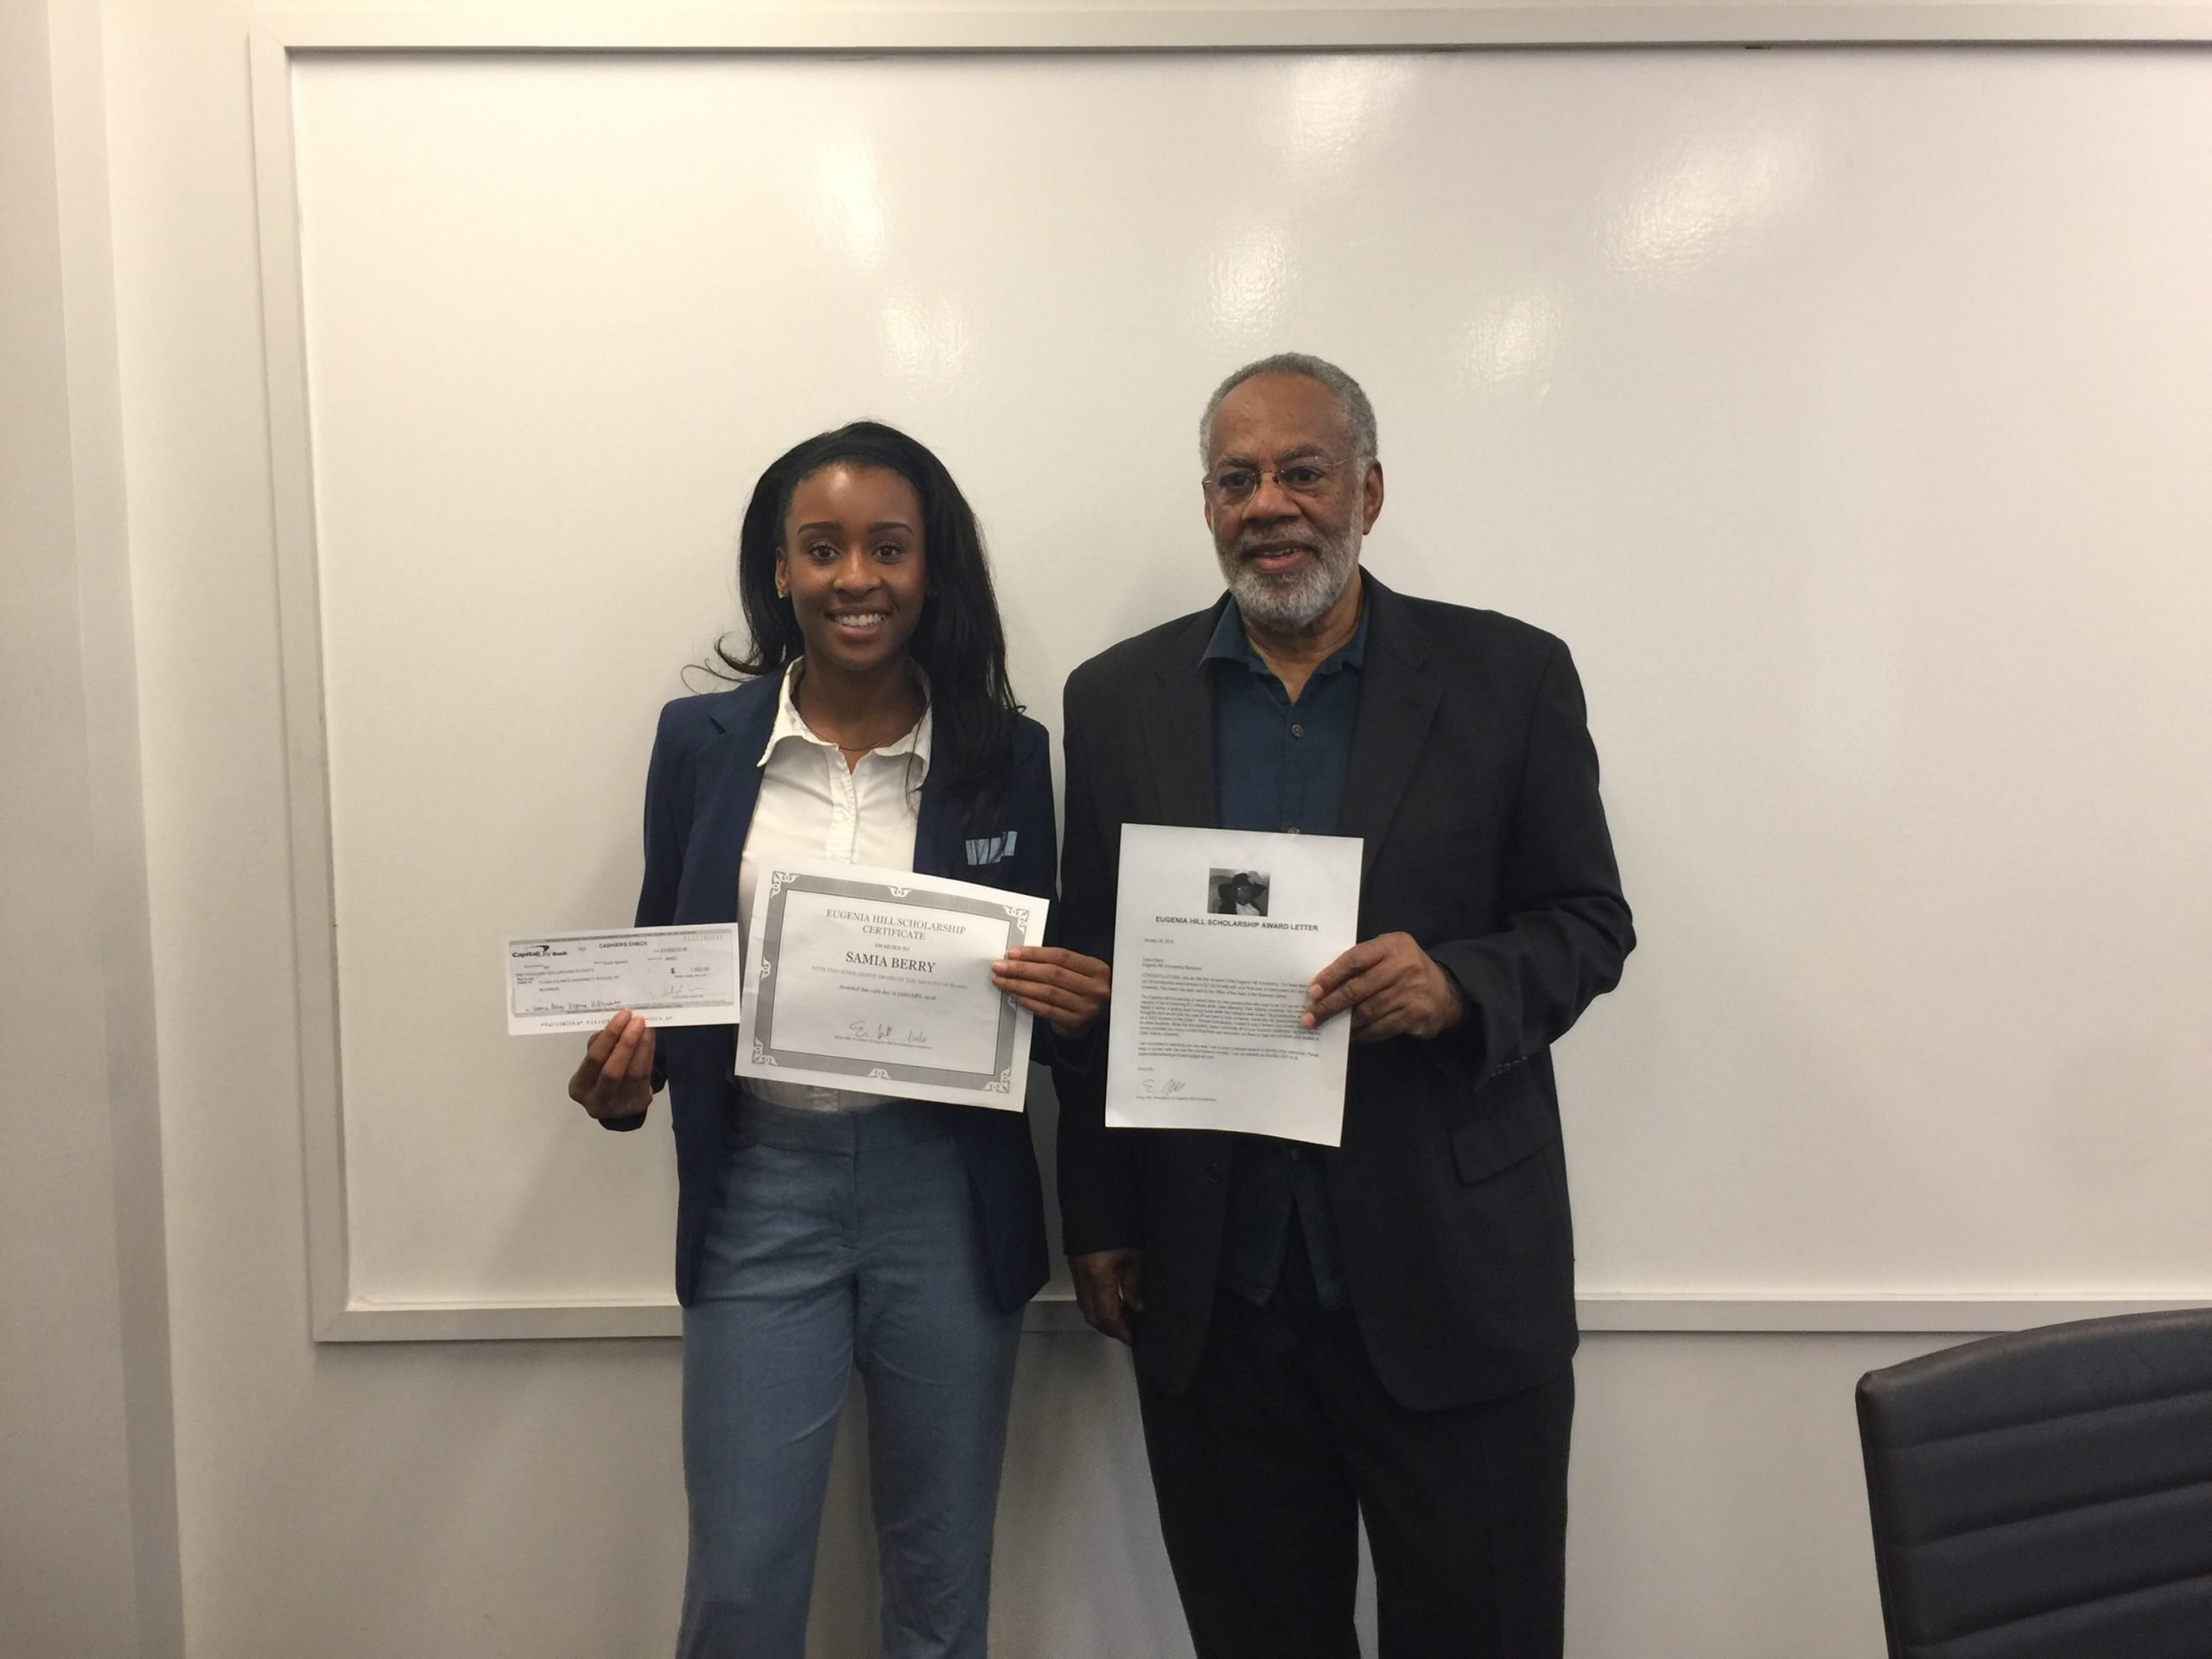 2018 Recipient Samia Berry and Dean Davis holding scholarship check